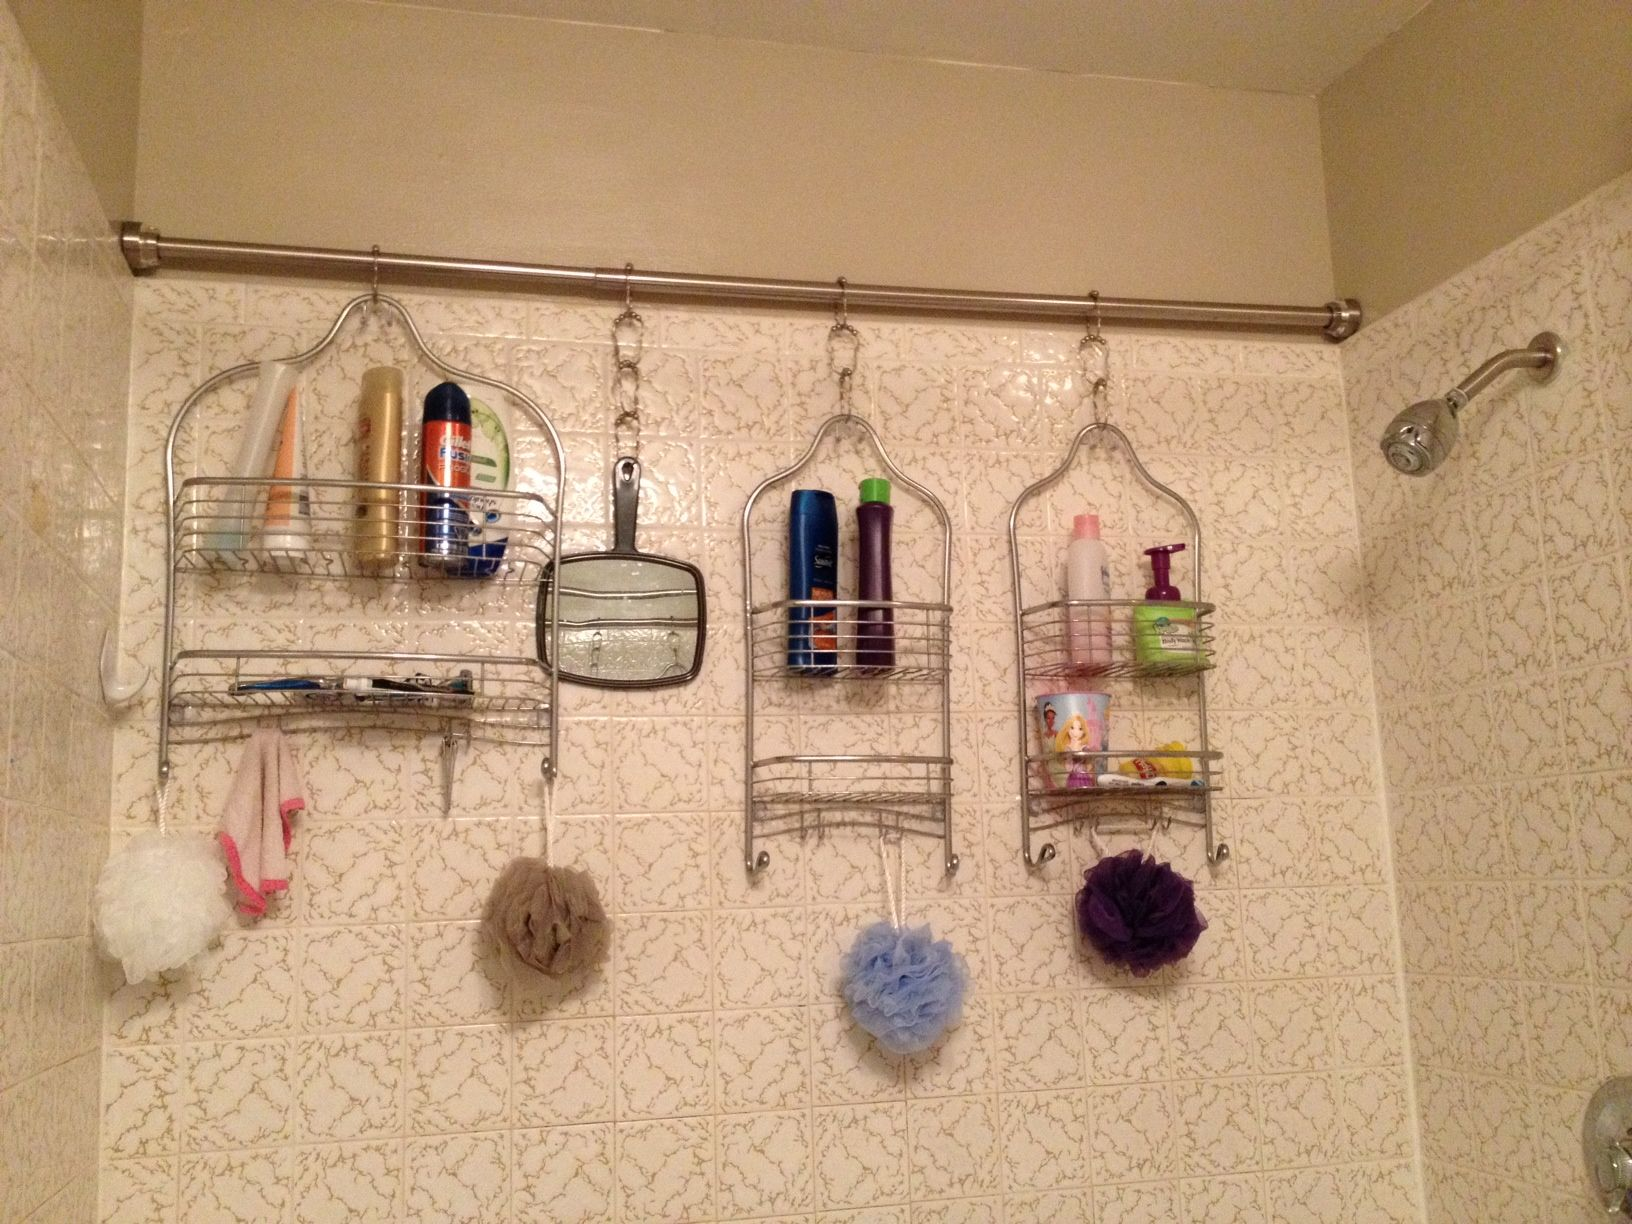 Install a tension rod in your shower and hang multiple shower caddies for additional storage.